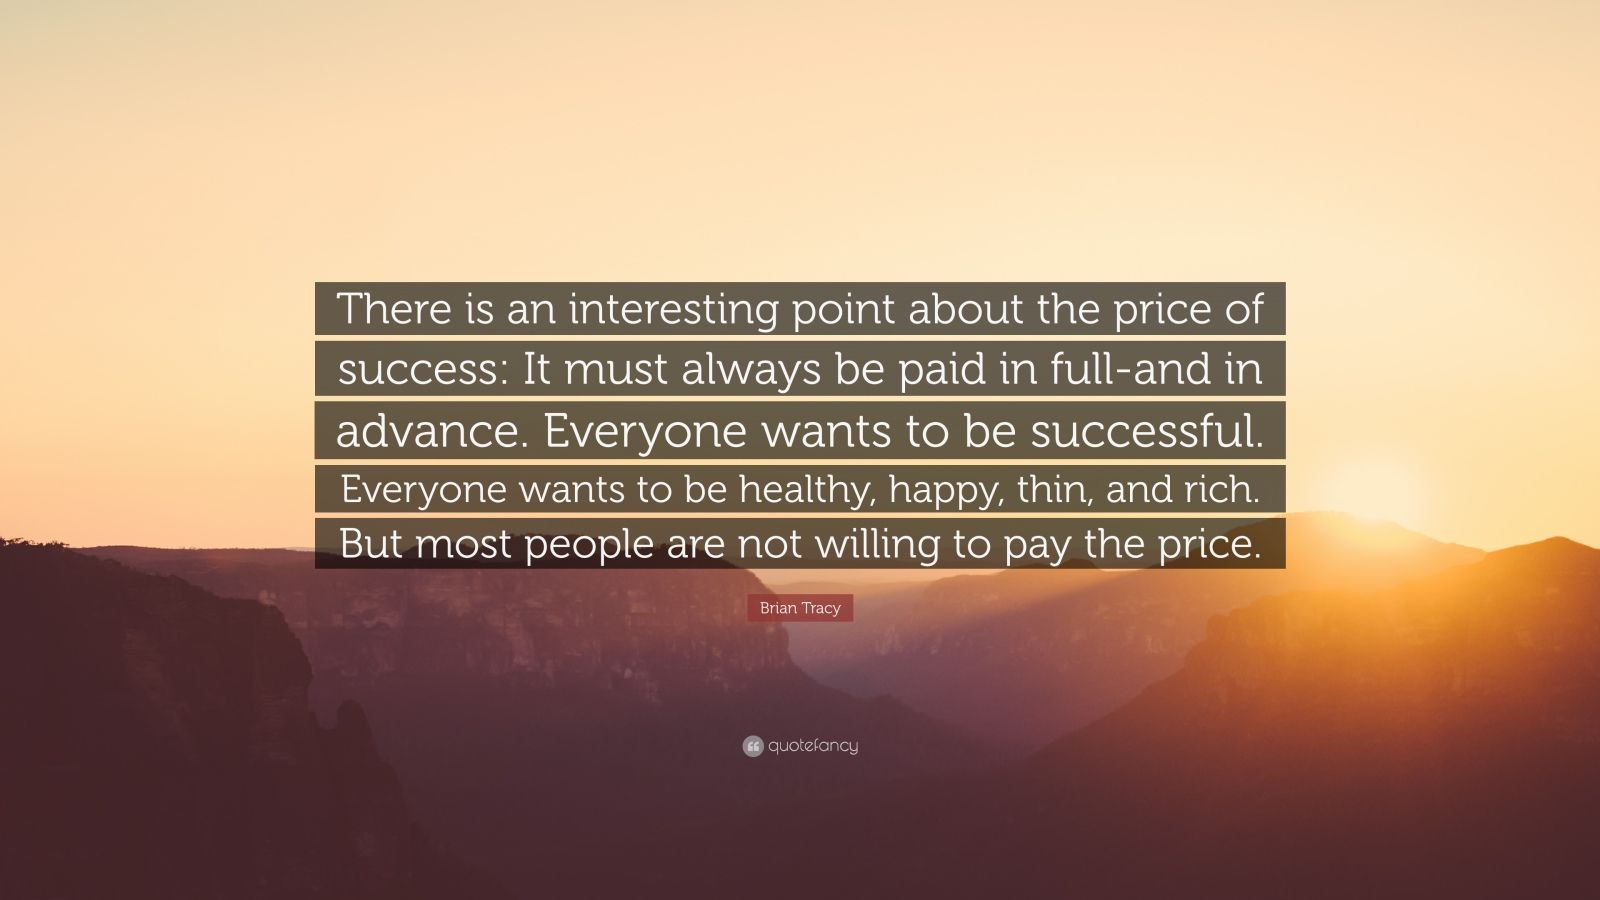 "Brian Tracy Quote: ""There is an interesting point about the price of success: It must always be paid in full-and in advance. Everyone wants to be successful. Everyone wants to be healthy, happy, thin, and rich. But most people are not willing to pay the price."""